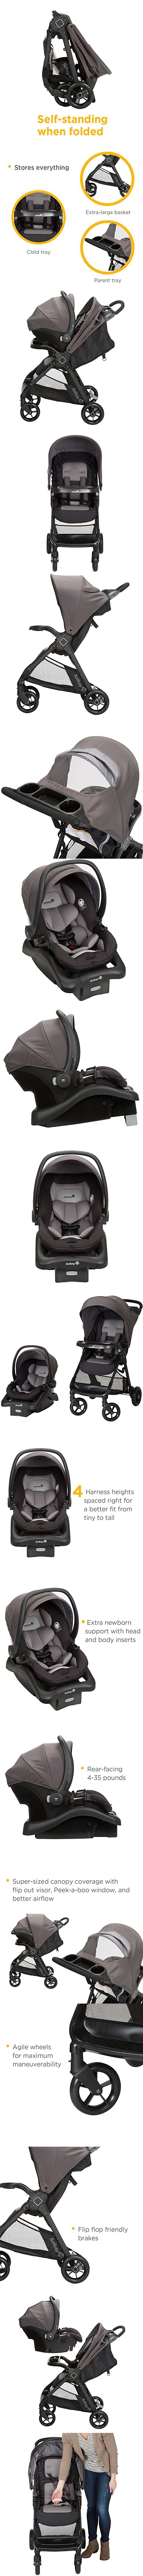 Safety 1st Smooth Ride Travel System with Board 35 LT Infant Car Seat Monument 2